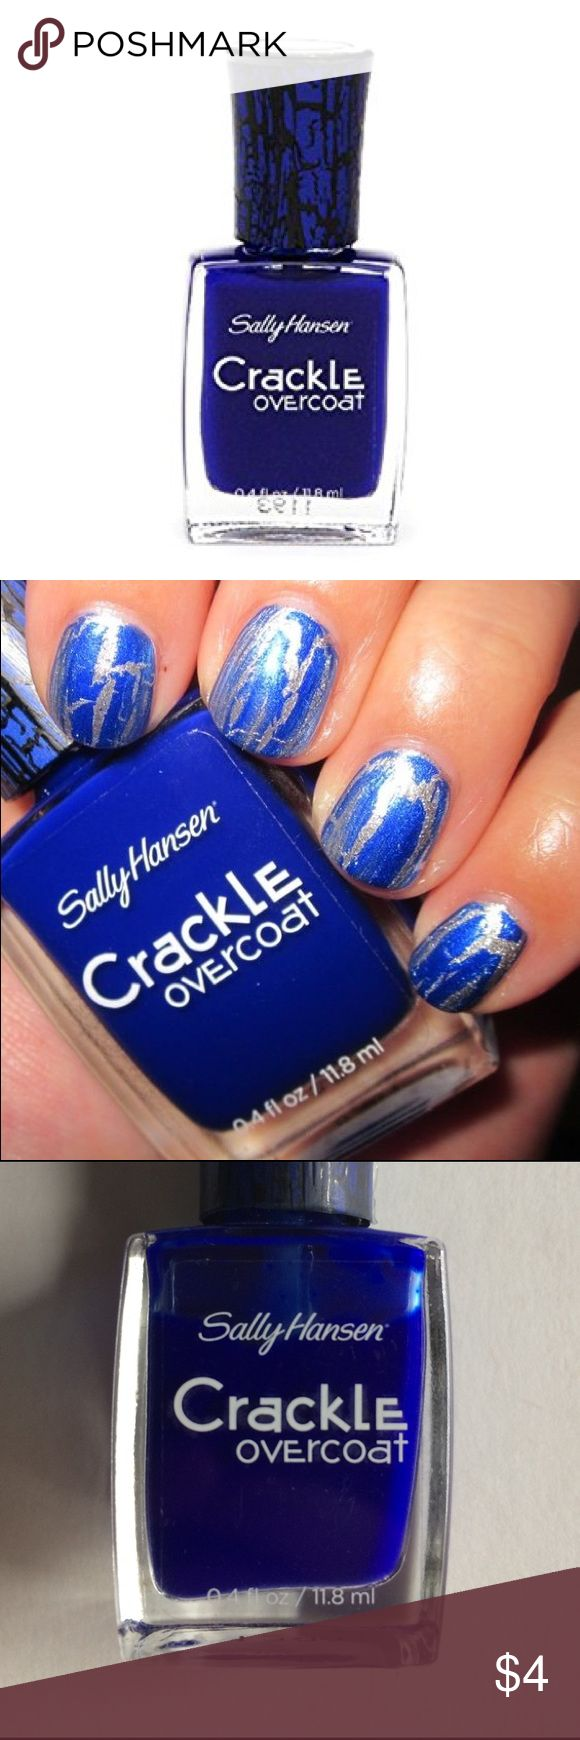 Sally Hansen Distressed Denim Crackle Overcoat Sally Hansen Distressed Denim Blue Crackle Overcoat. Used once, almost completely full (see 3rd photo). For modern and sophisticated looking nails. Creates a unique crackle effect. Wet to set in 60 seconds.   I ship daily and am open to trades if you have one of my ISOs (listed in my closet). Will consider all offers! 20% off all bundles of 2+ items, always! Sally Hansen Other